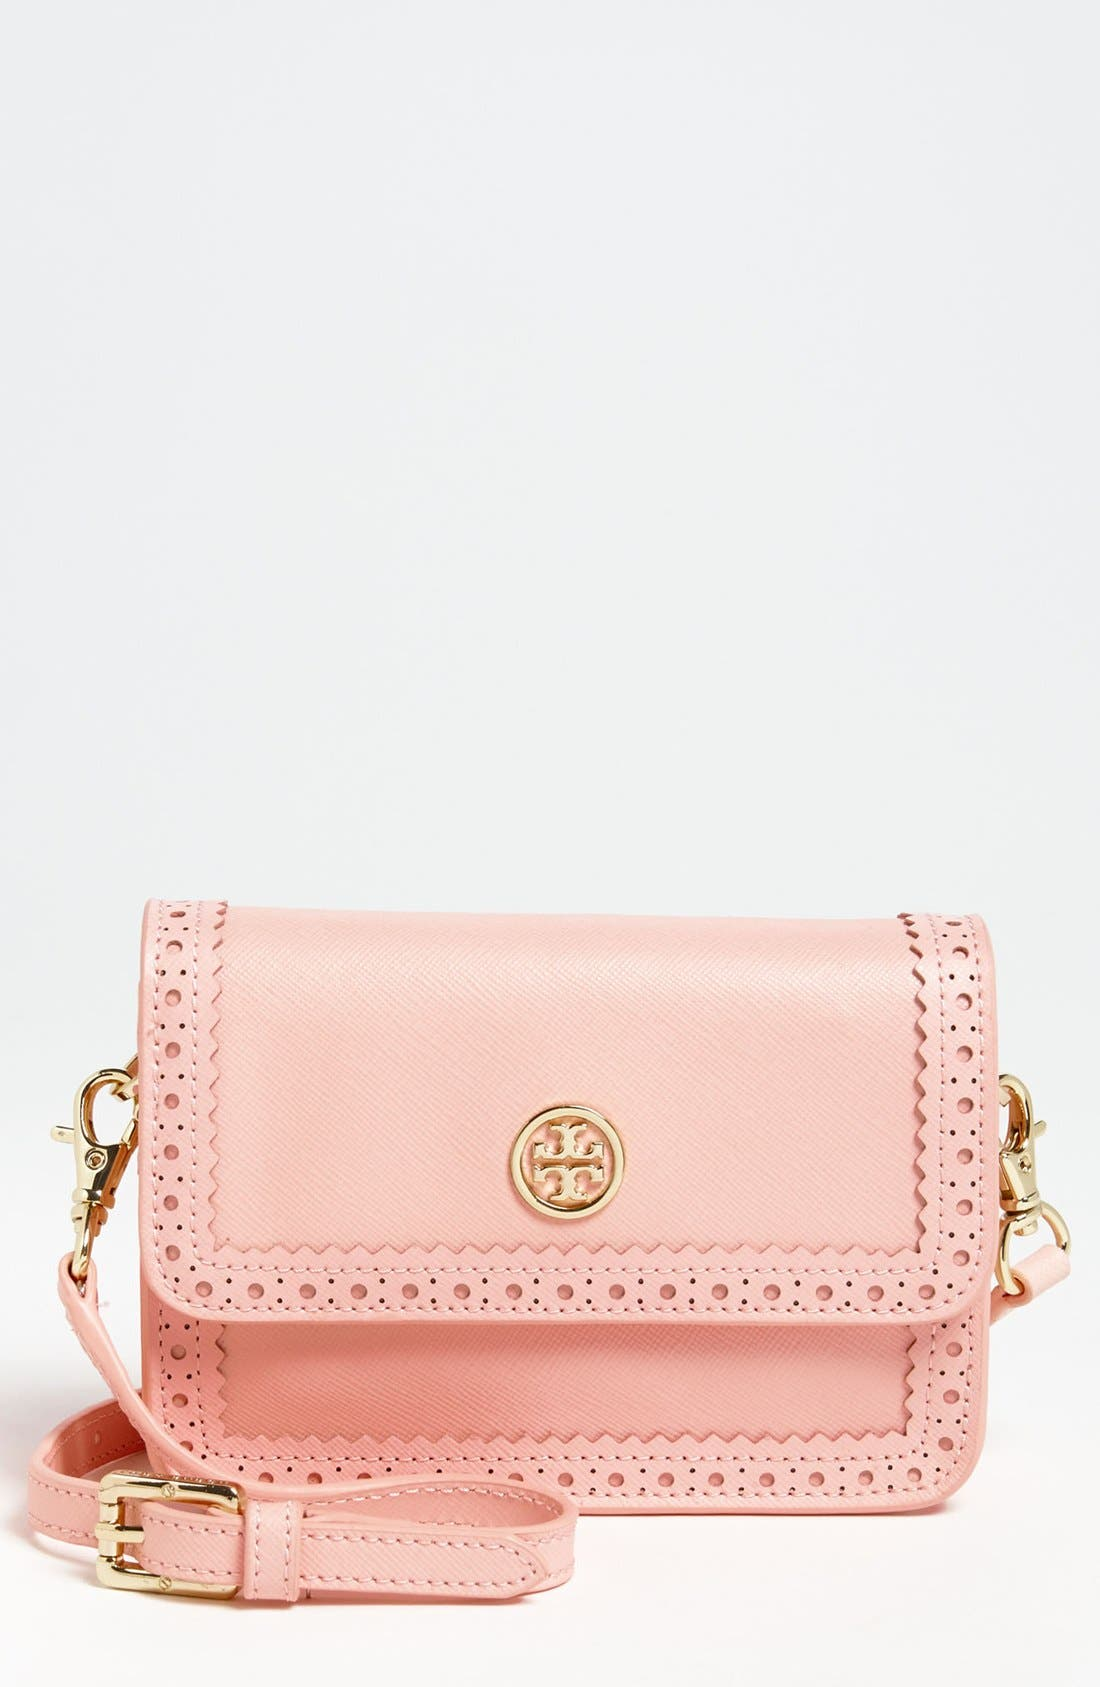 Main Image - Tory Burch 'Robinson Spectator - Mini' Saffiano Leather Crossbody Bag